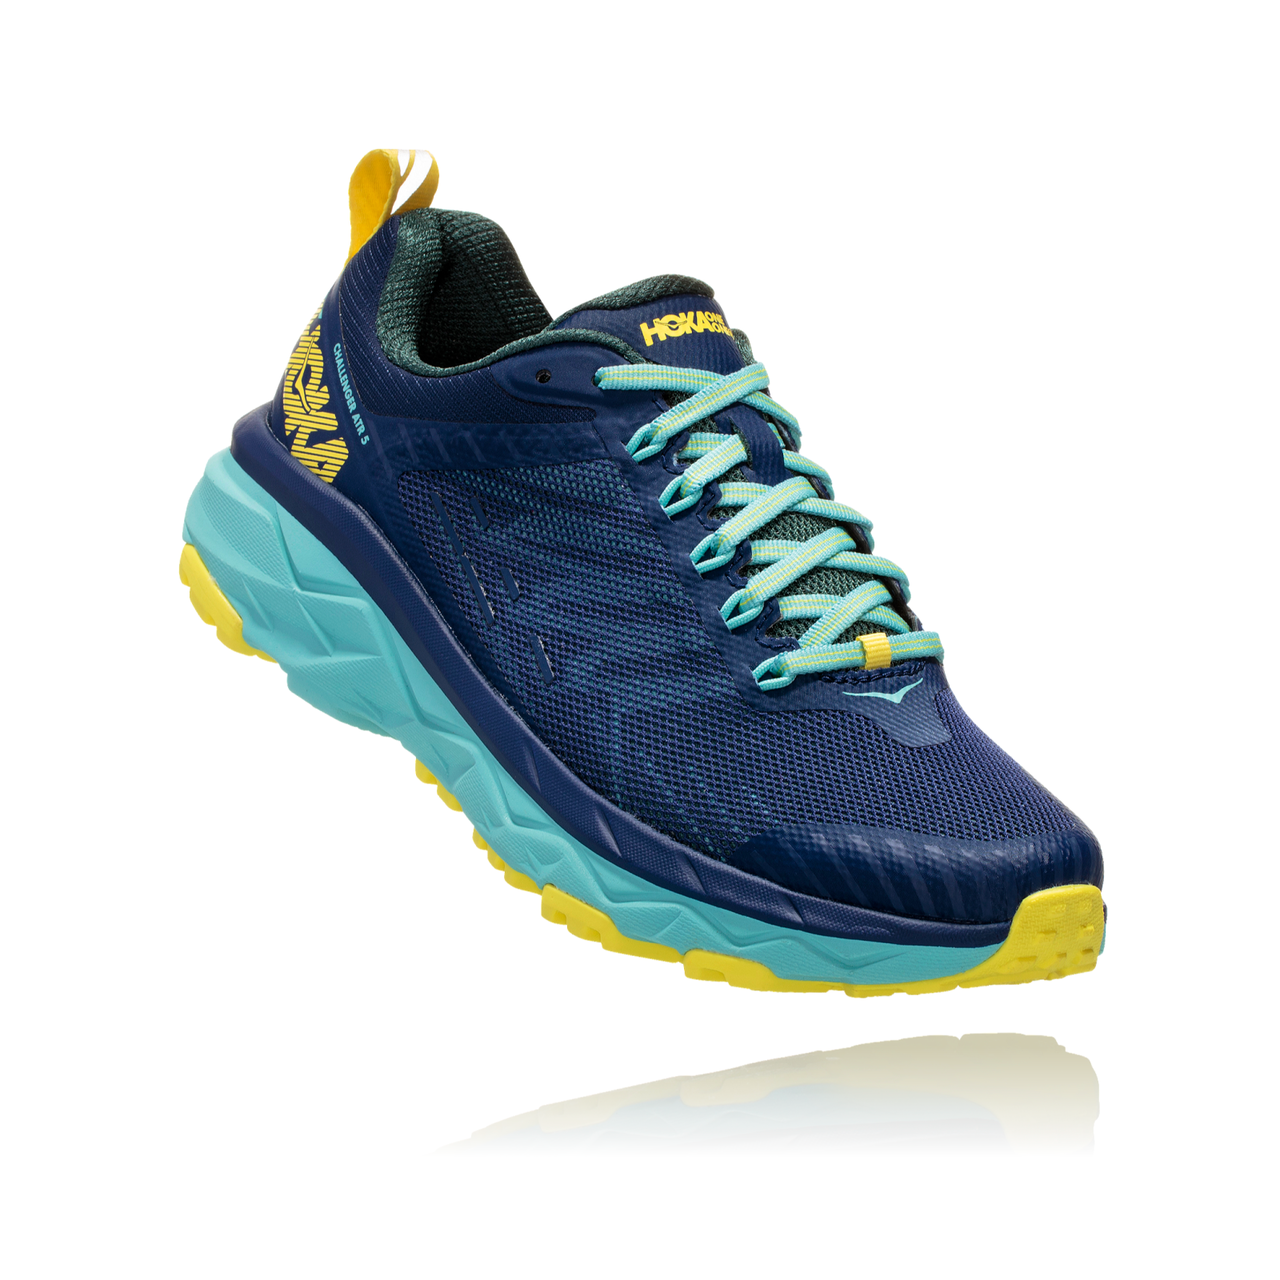 Hoka One One Women's Challenger ATR 5 Trail Shoe - 2019 price